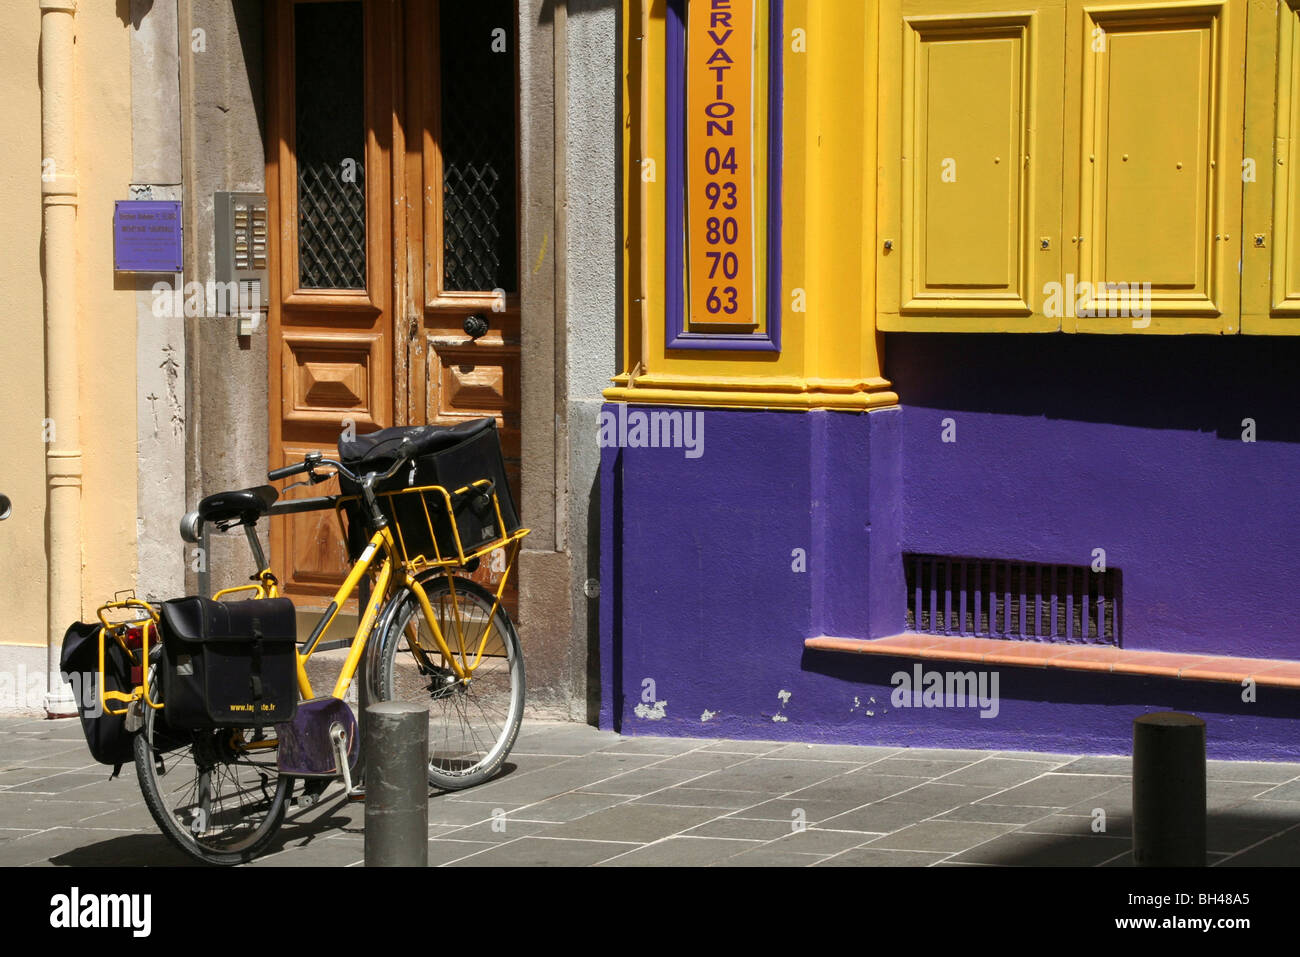 Street scene with a bicycle in front of a door and colourful frontage of a building. - Stock Image